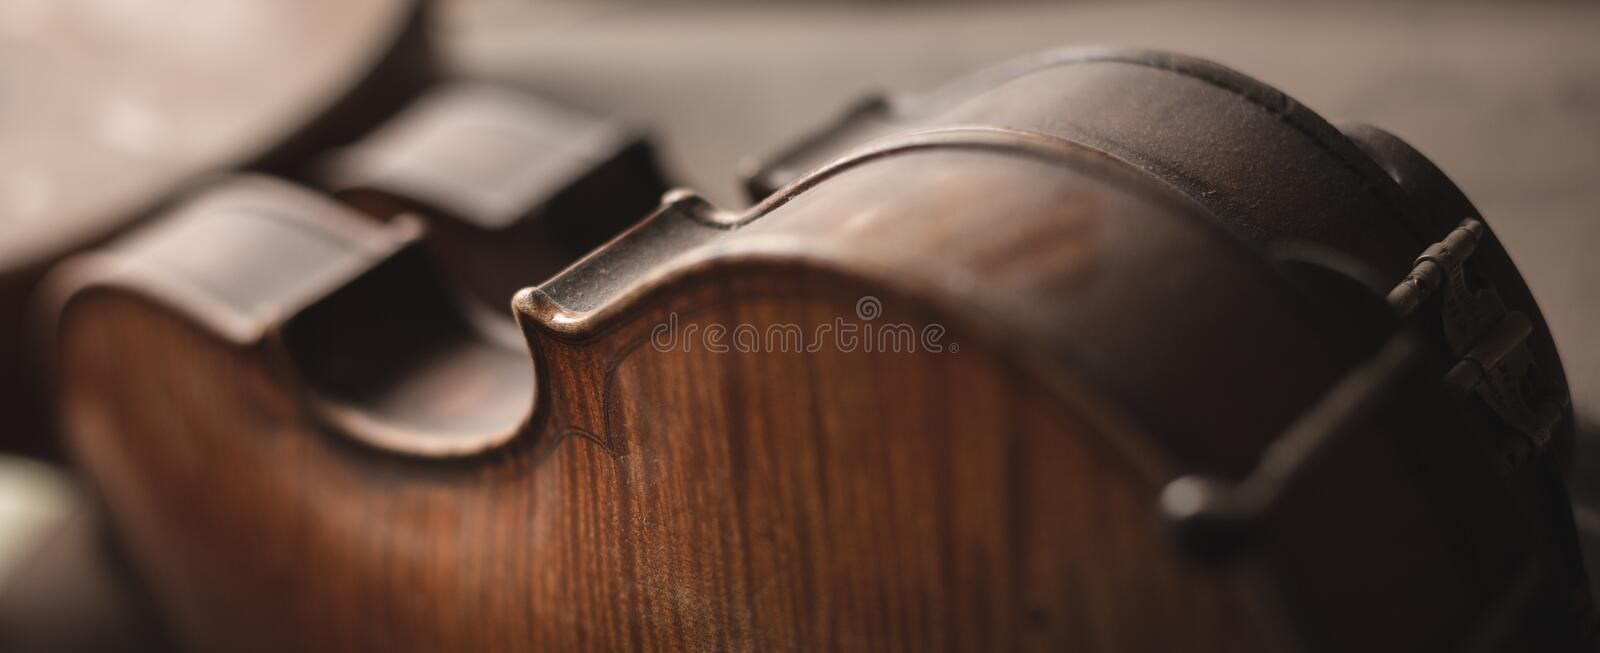 Old violins with a slight layer of dust. Elegant close-up of two antique violins. Dark wooden curves of the instruments covered with a thin layer of dust royalty free stock photo